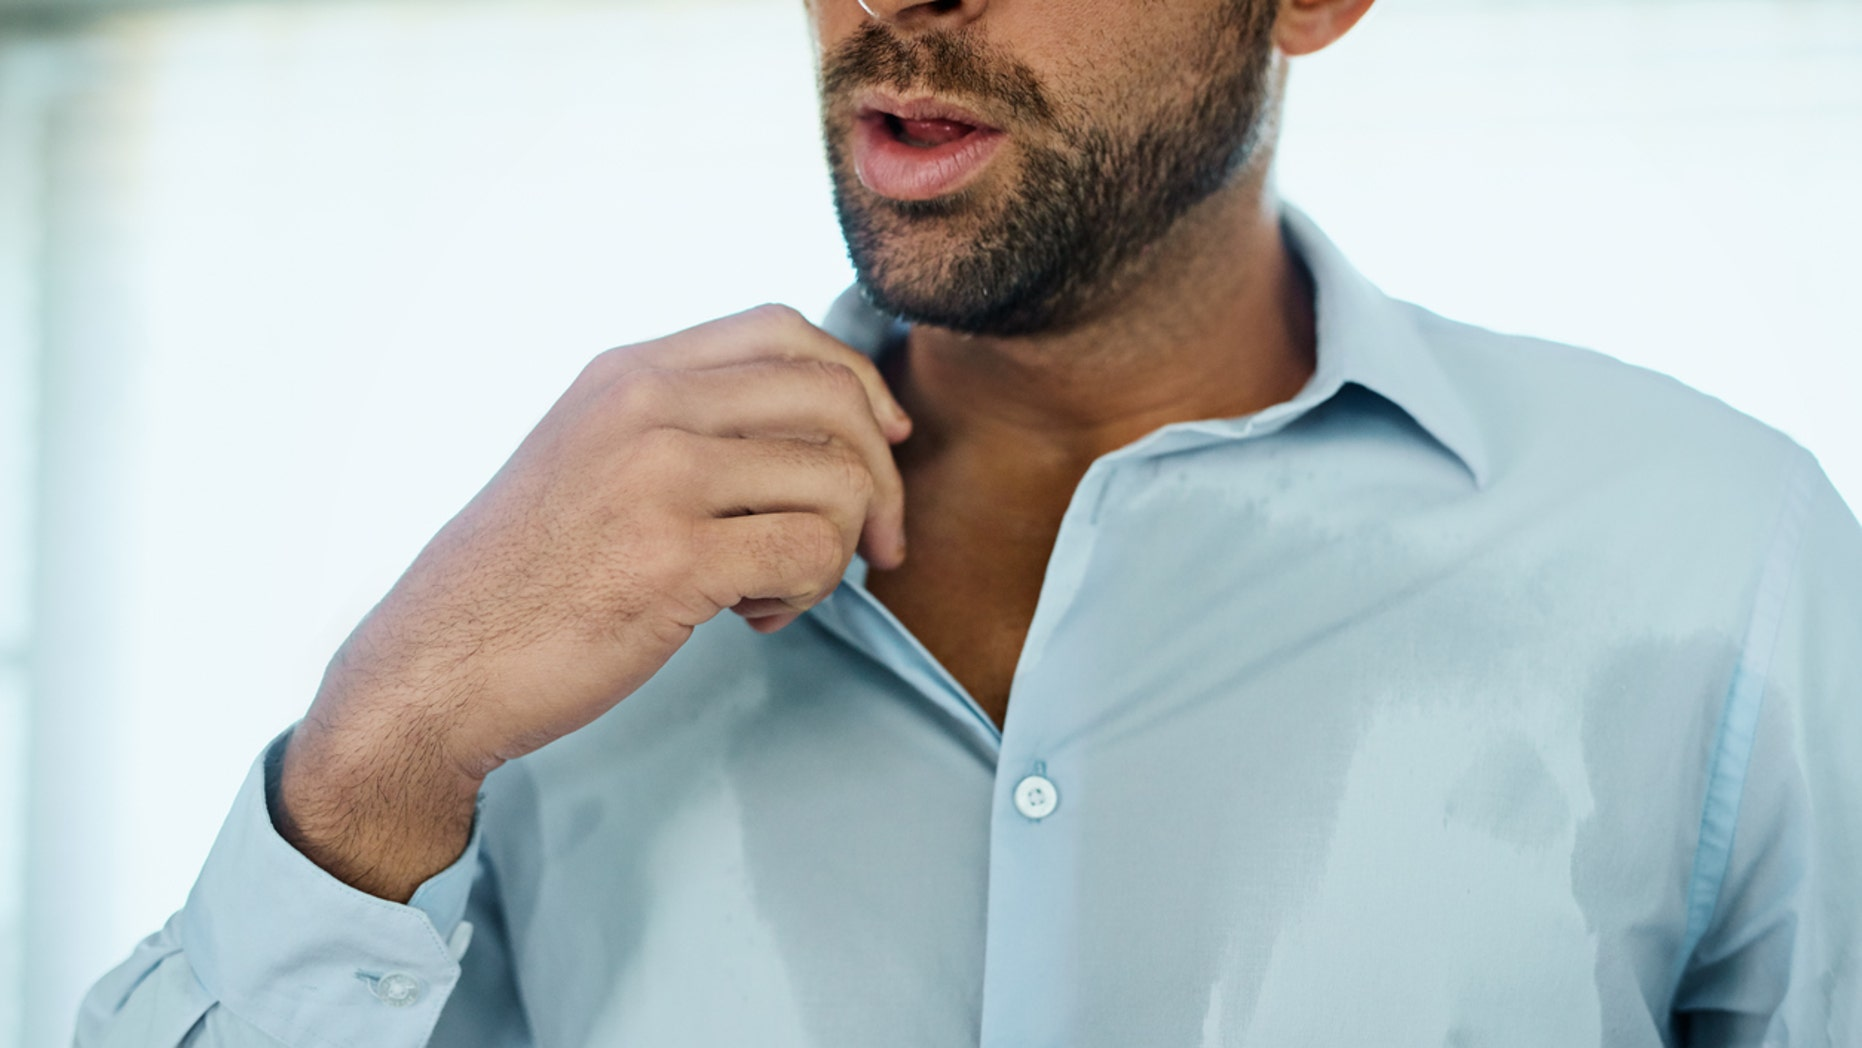 The FDA recently approved Qbrexza (glycopyrronium), a once-daily topical treatment, for excessive underarm sweating.